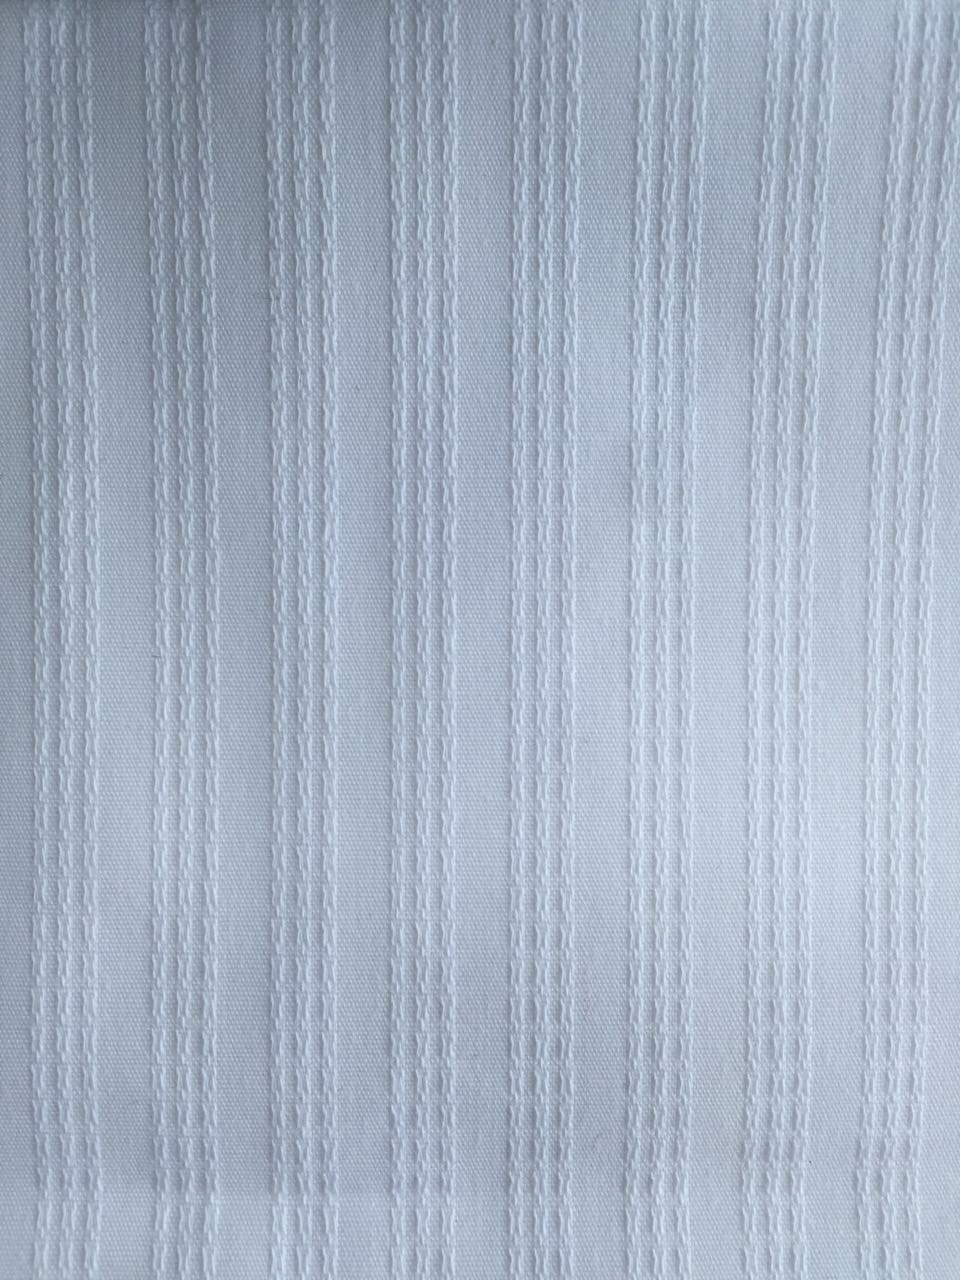 Taekwondo uniform three strip fabric